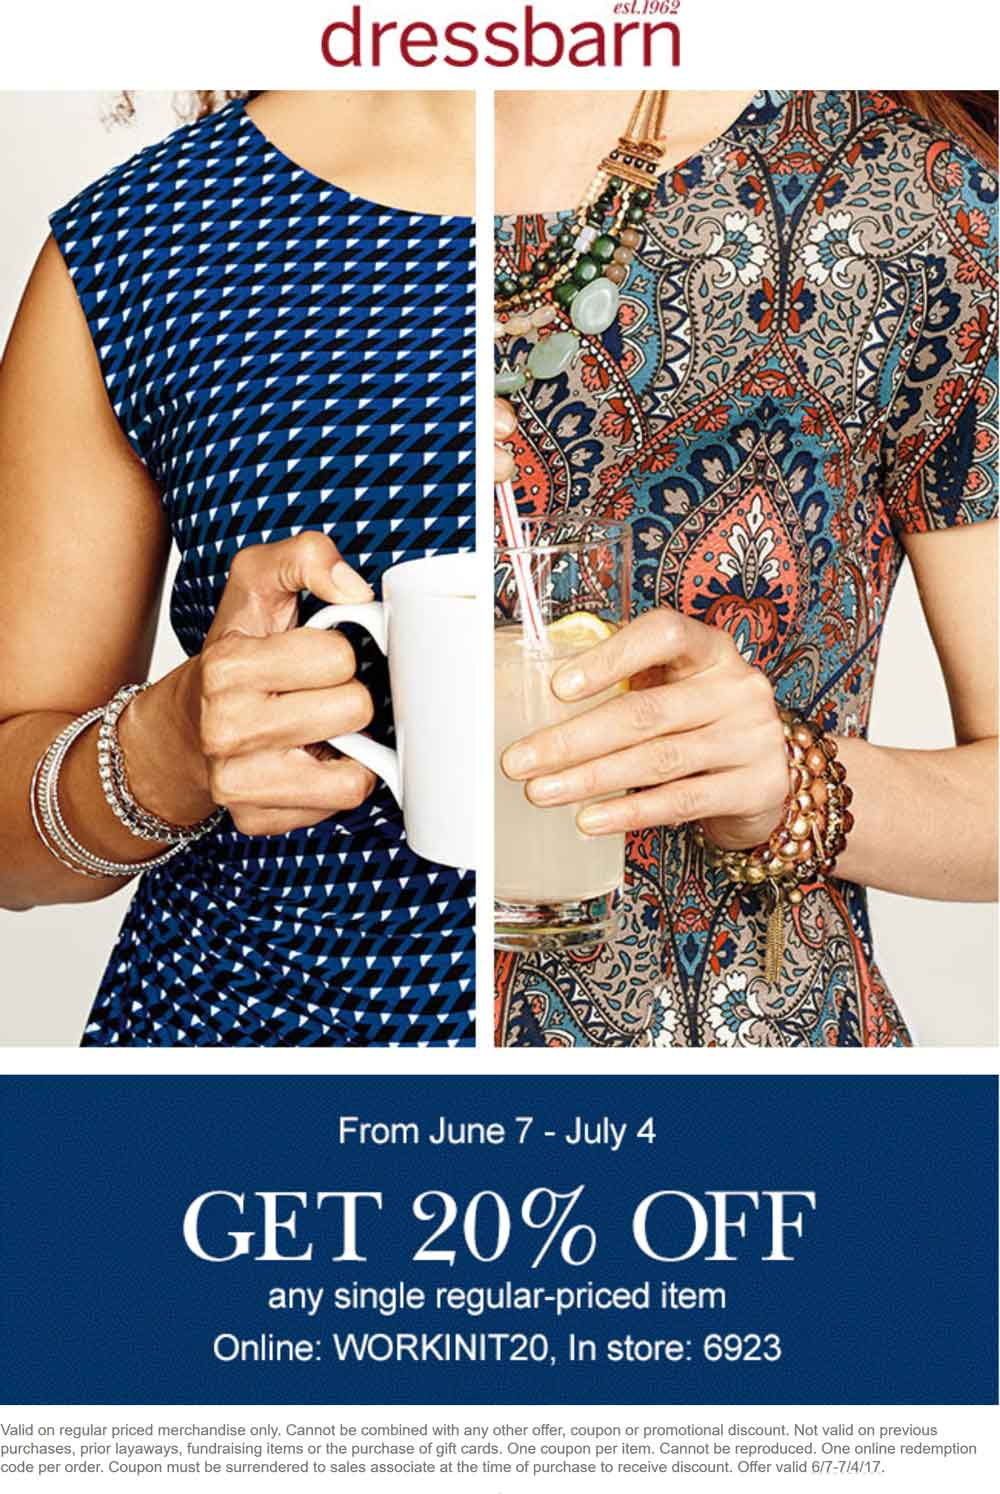 Dressbarn Coupon December 2018 20% off a single item at Dressbarn, or online via promo code WORKINIT20